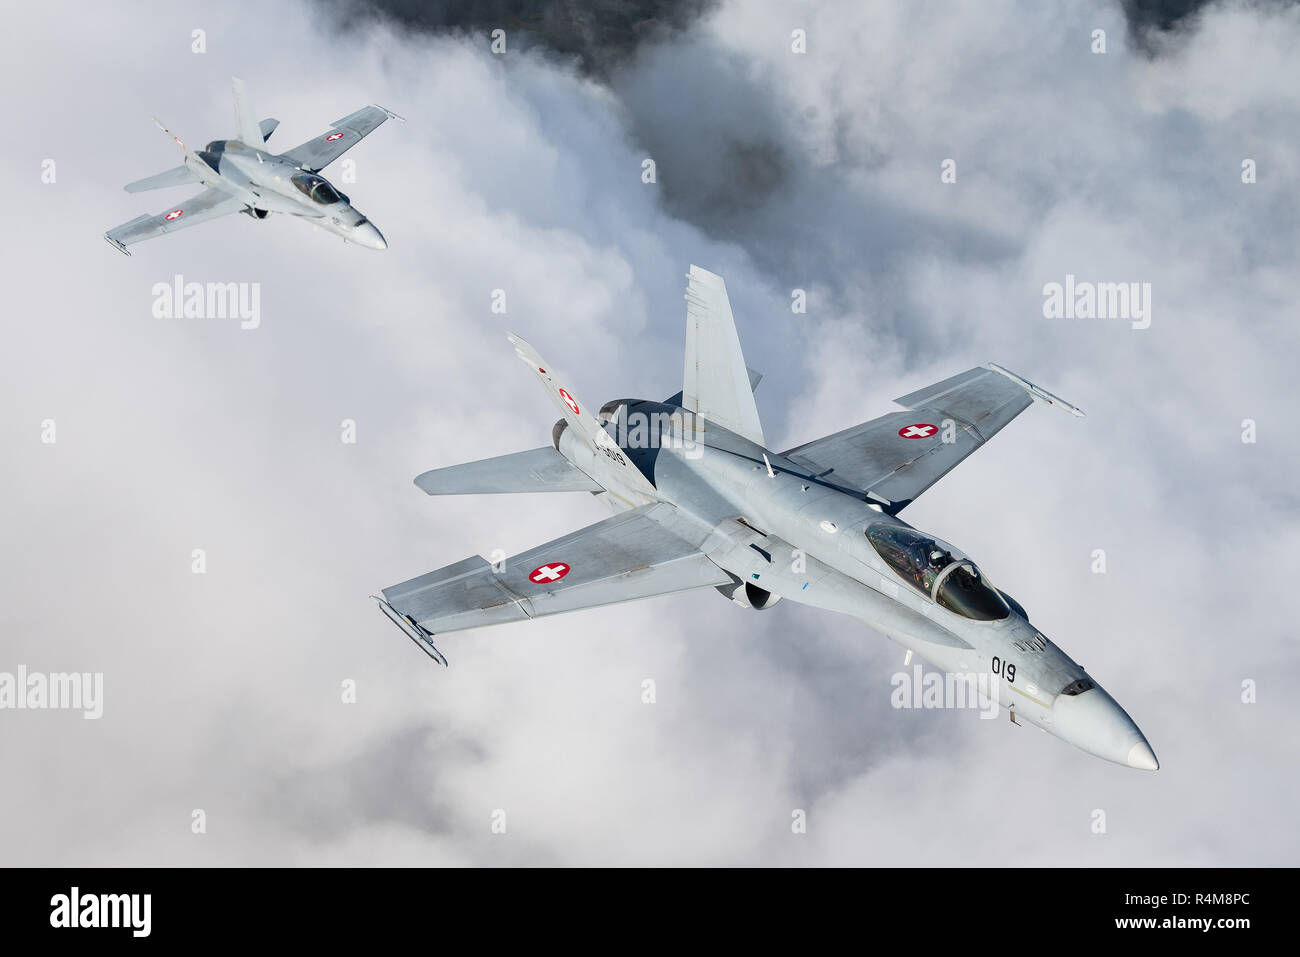 Flying with the McDonnell Douglas F/A-18C Hornet of the Swiss Air Force. - Stock Image